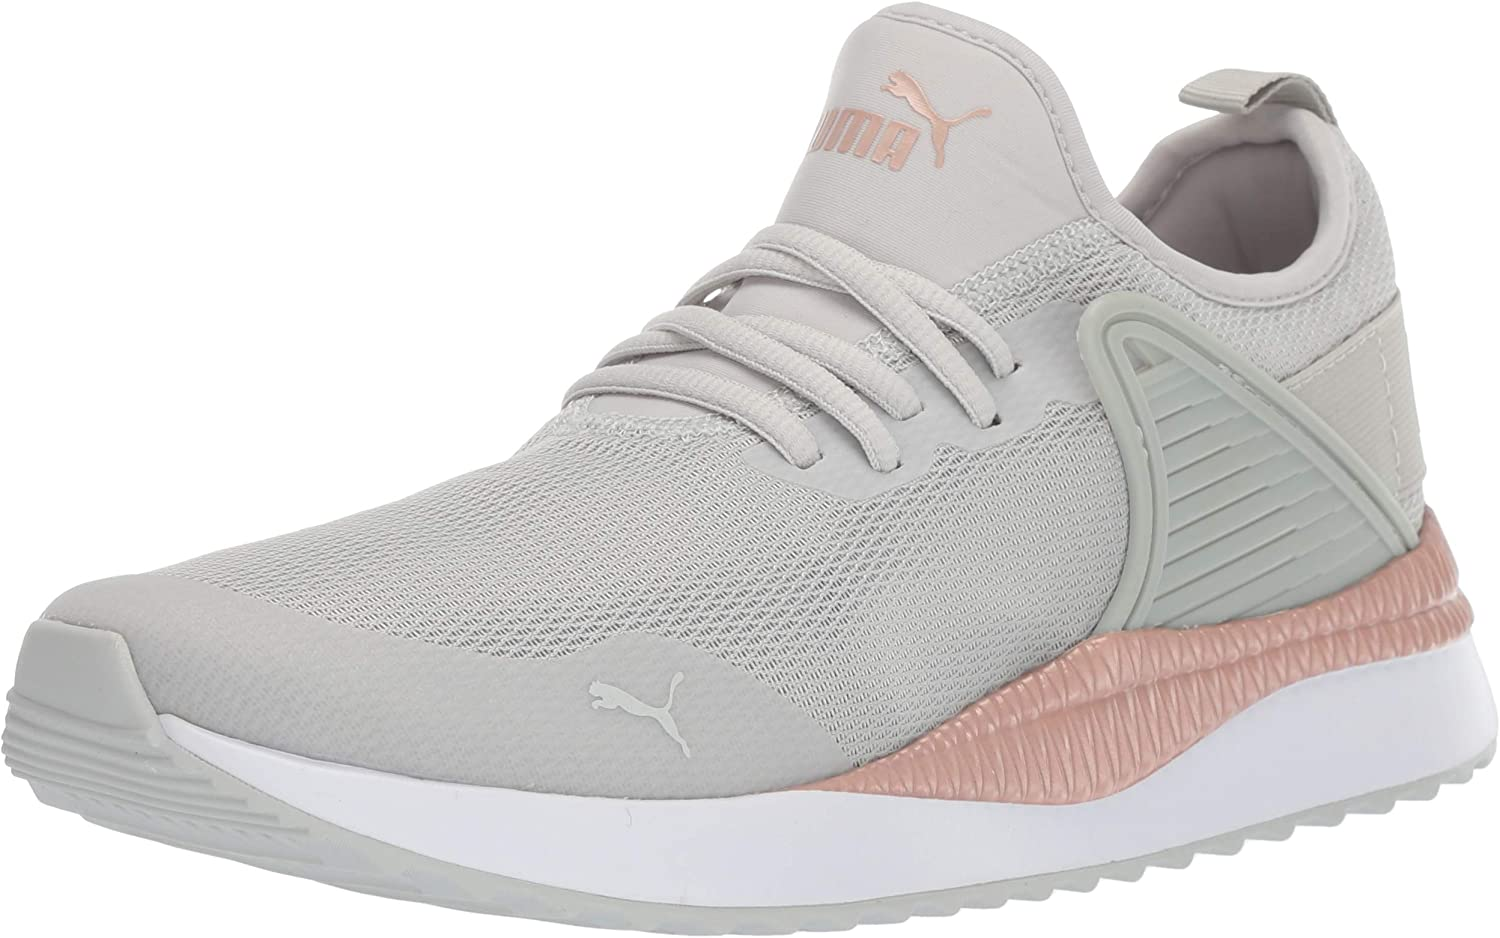 puma pacer next cage women's review